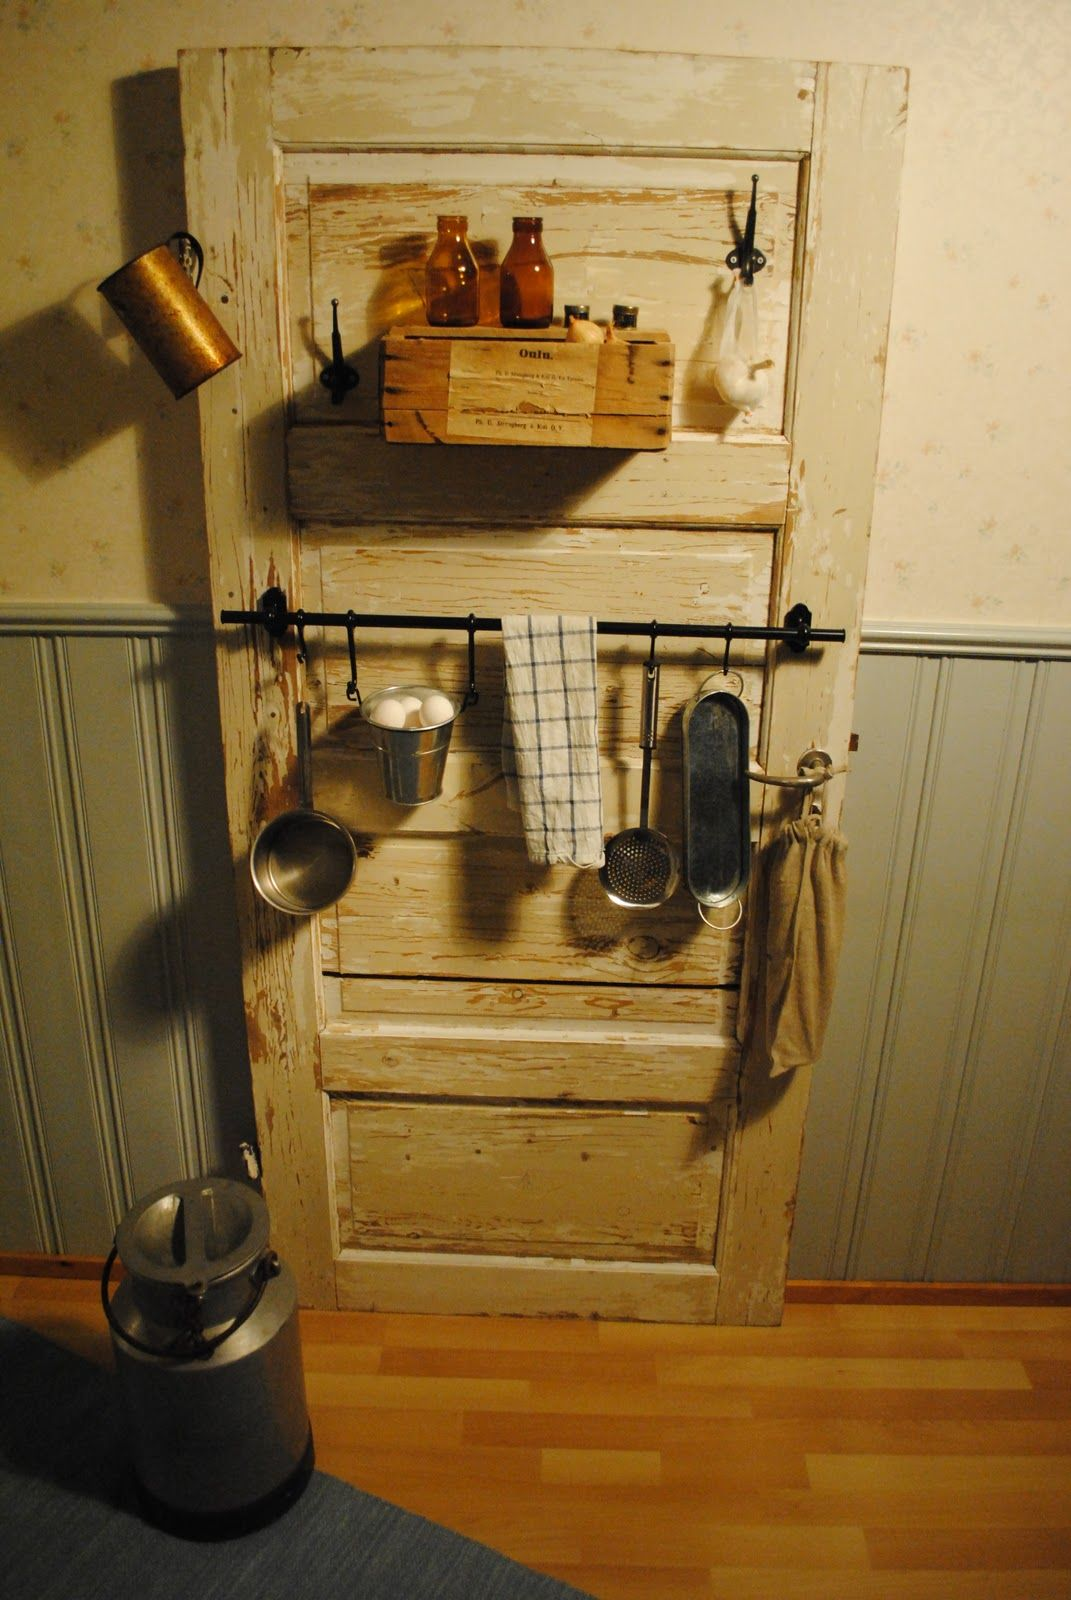 My old wooden door turned into a kitchen shelf | Garage ...